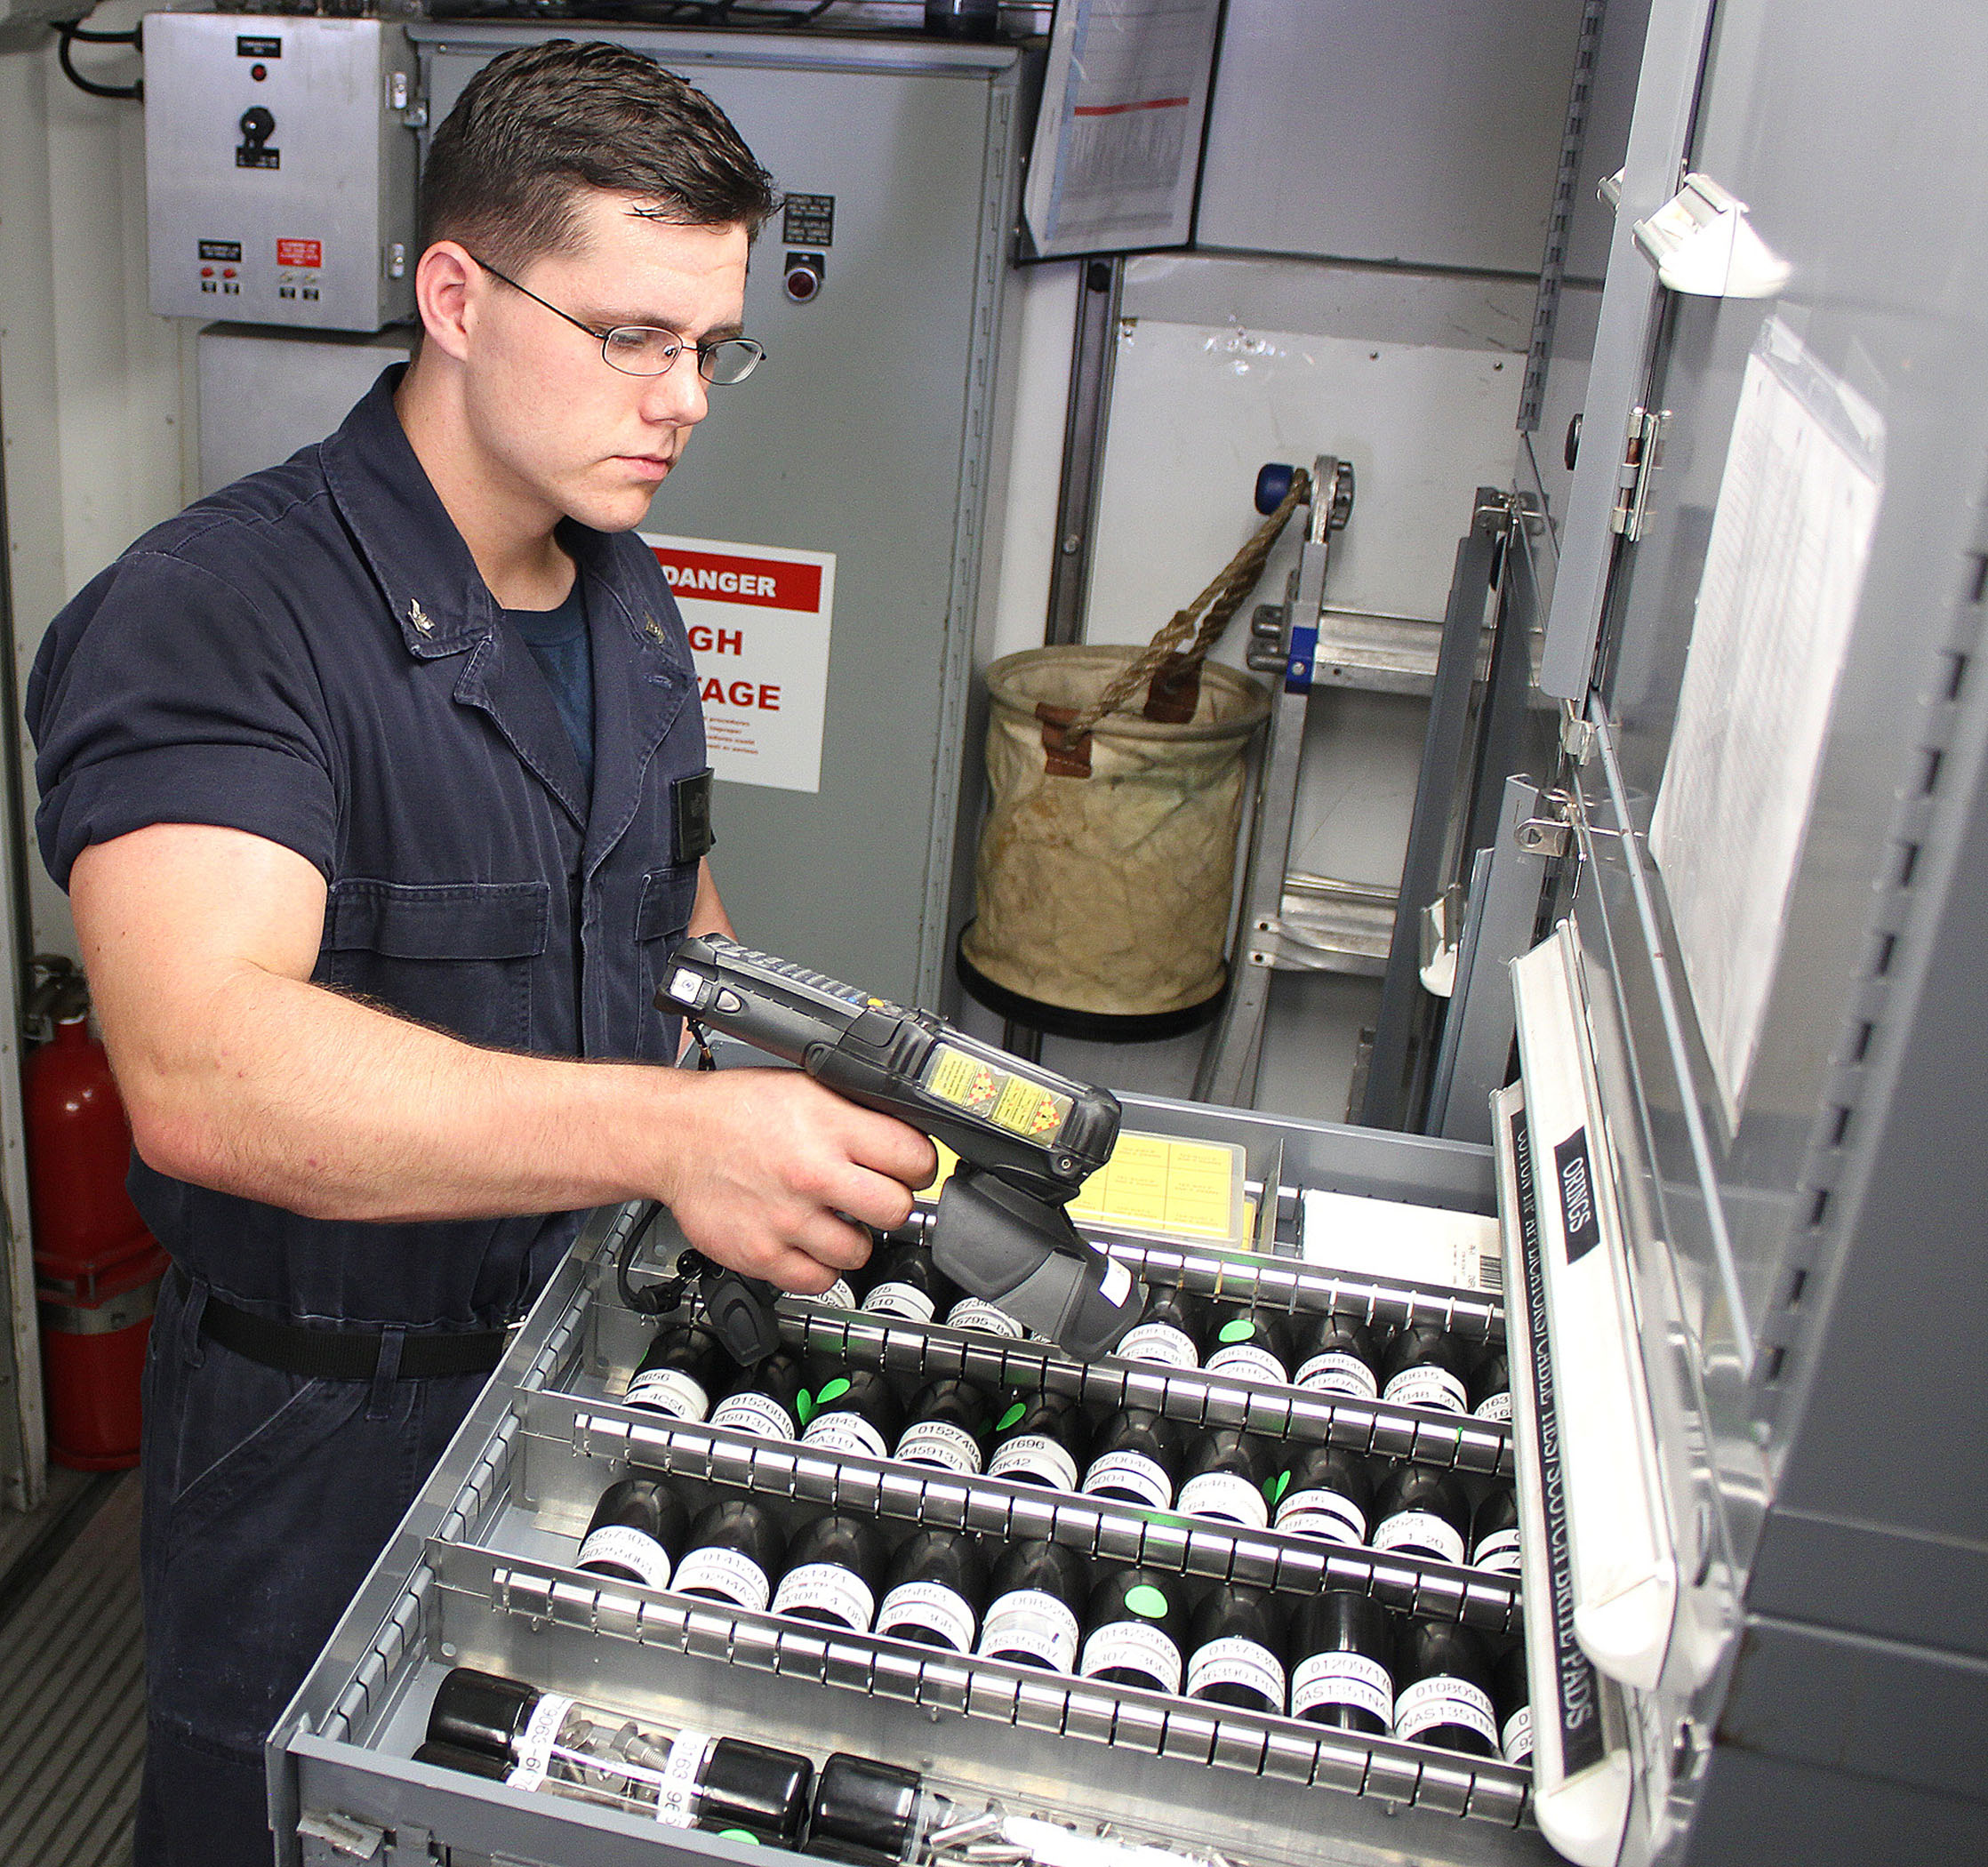 Pensacola, Florida - PENSACOLA, Florida - Machinist Mate Third Class Petty Officer (SW) Logan Peters uses a hand-held RFID scanner to conduct inventory aboard USS Independence. RFID technology provides the ability to dramatically reduce the time sailors spend conducting parts and equipment inventory in support of ship replenishment.   (Photo : Katherine Mapp, U.S. Navy/Released)